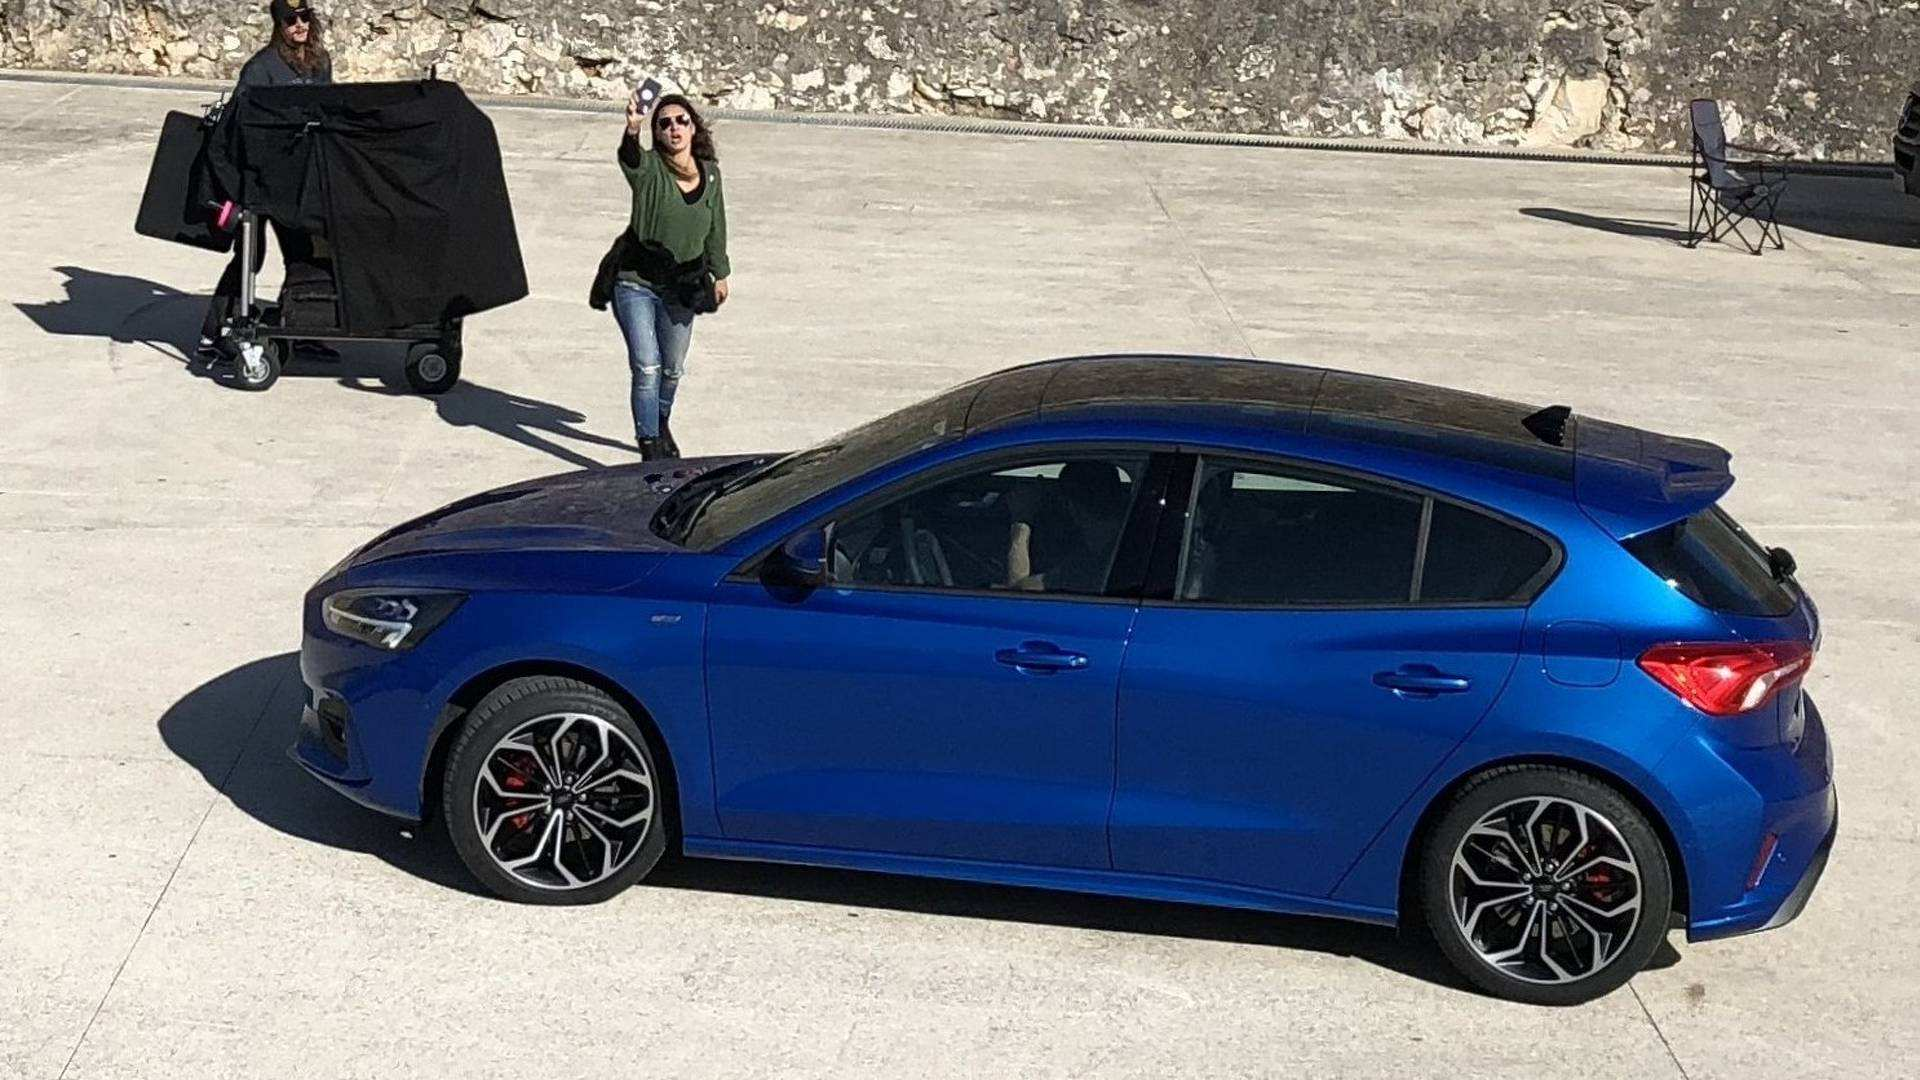 94 All New 2019 Ford Focus Rs St Wallpaper